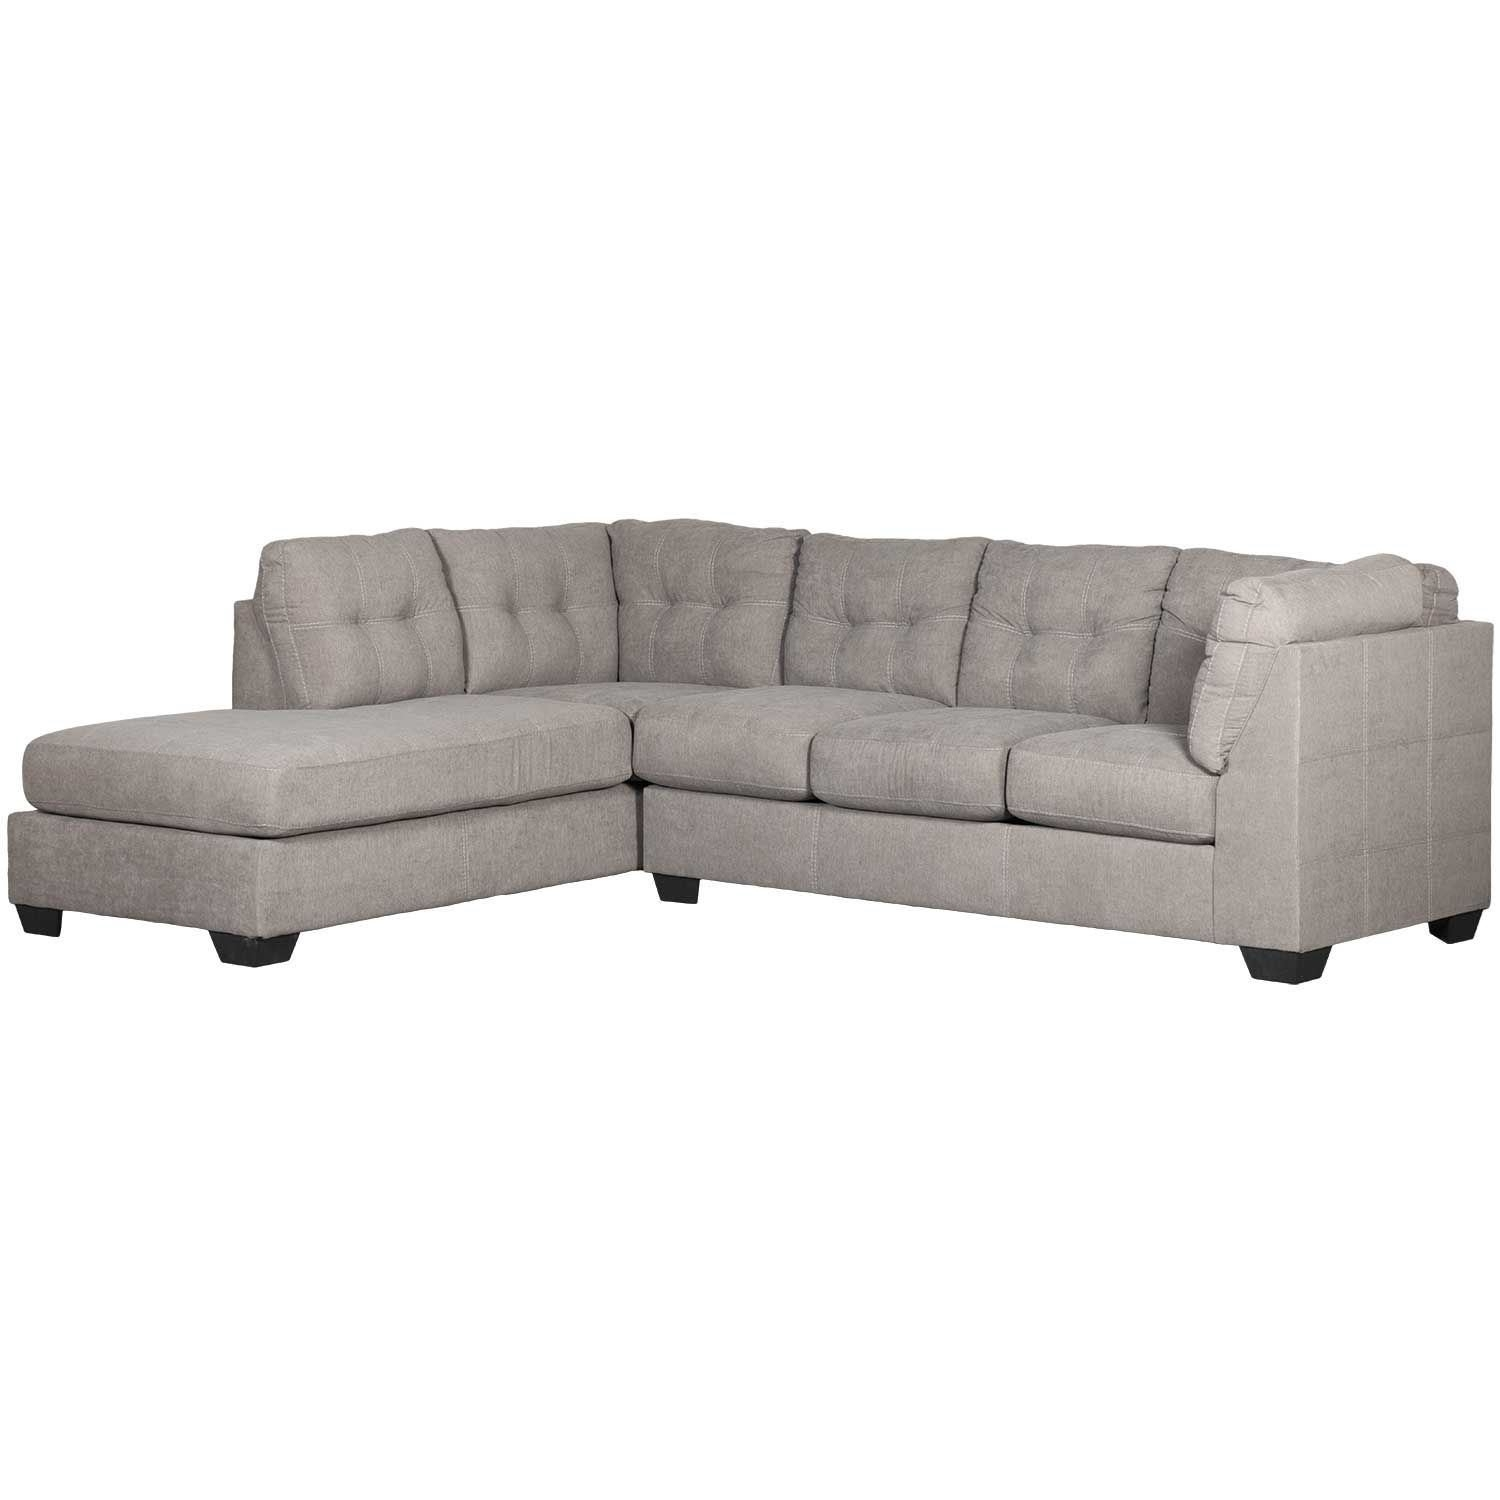 Maier Charcoal 2 Piece Sectional With Laf Chaise | 4520016/67 for Arrowmask 2 Piece Sectionals With Sleeper & Right Facing Chaise (Image 17 of 30)